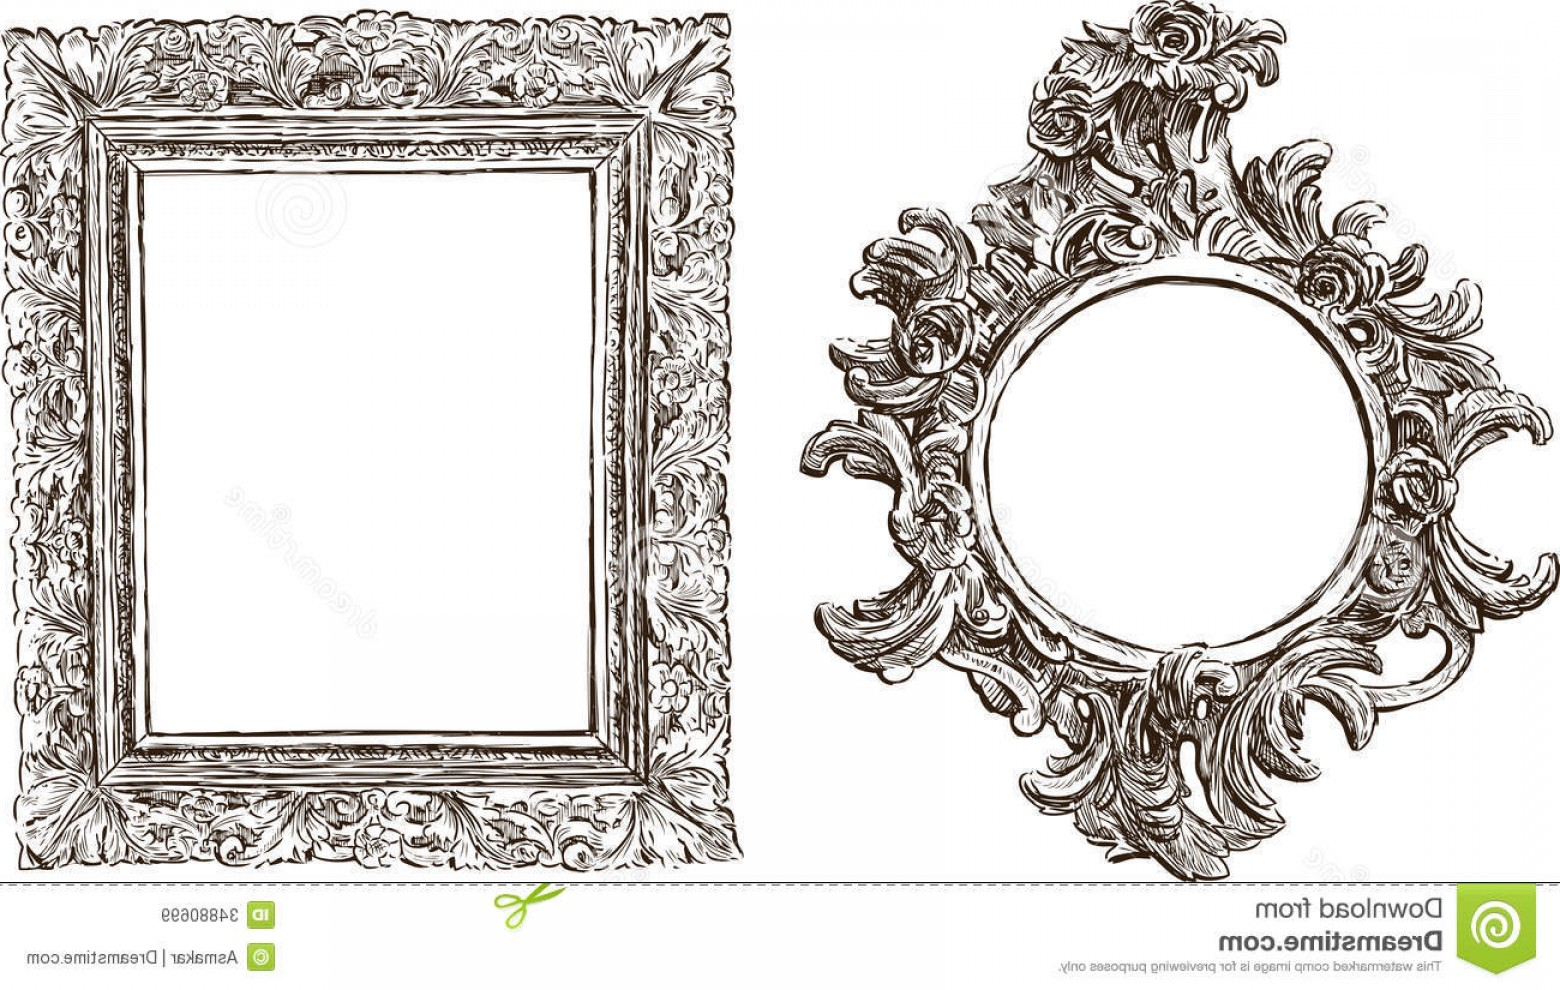 Vector Ornate Vintage Frame Blank: Royalty Free Stock Images Old Ornate Frames Vector Drawing Two Antique Image